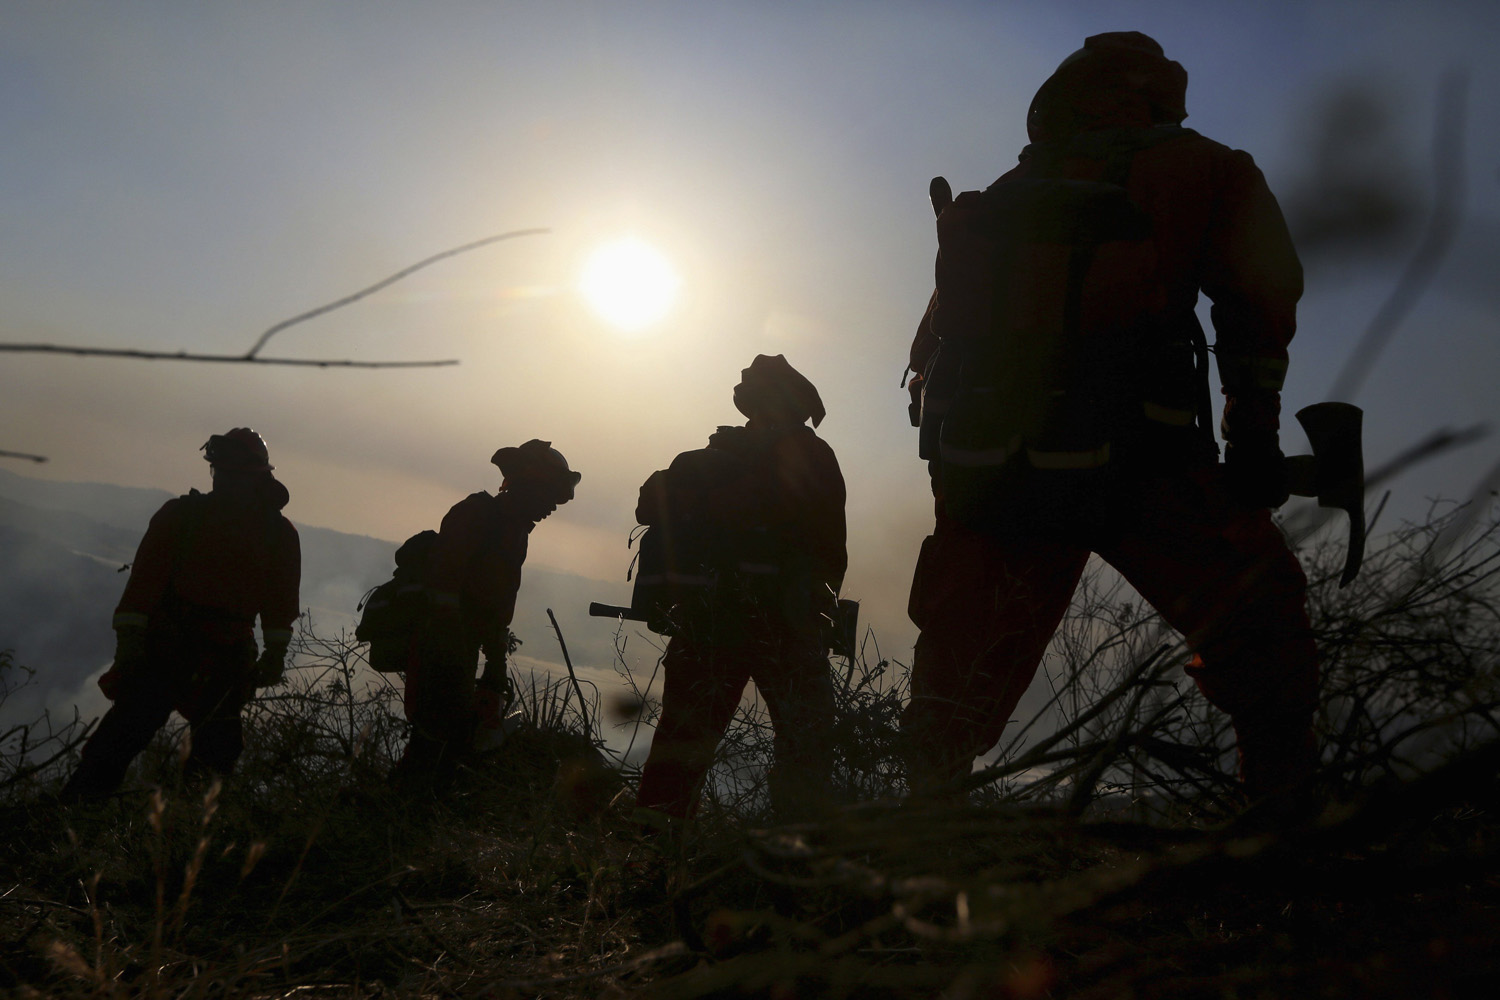 May 14, 2014. A prison crew battles a fire in an avocado grove outside Fallbrook, California.